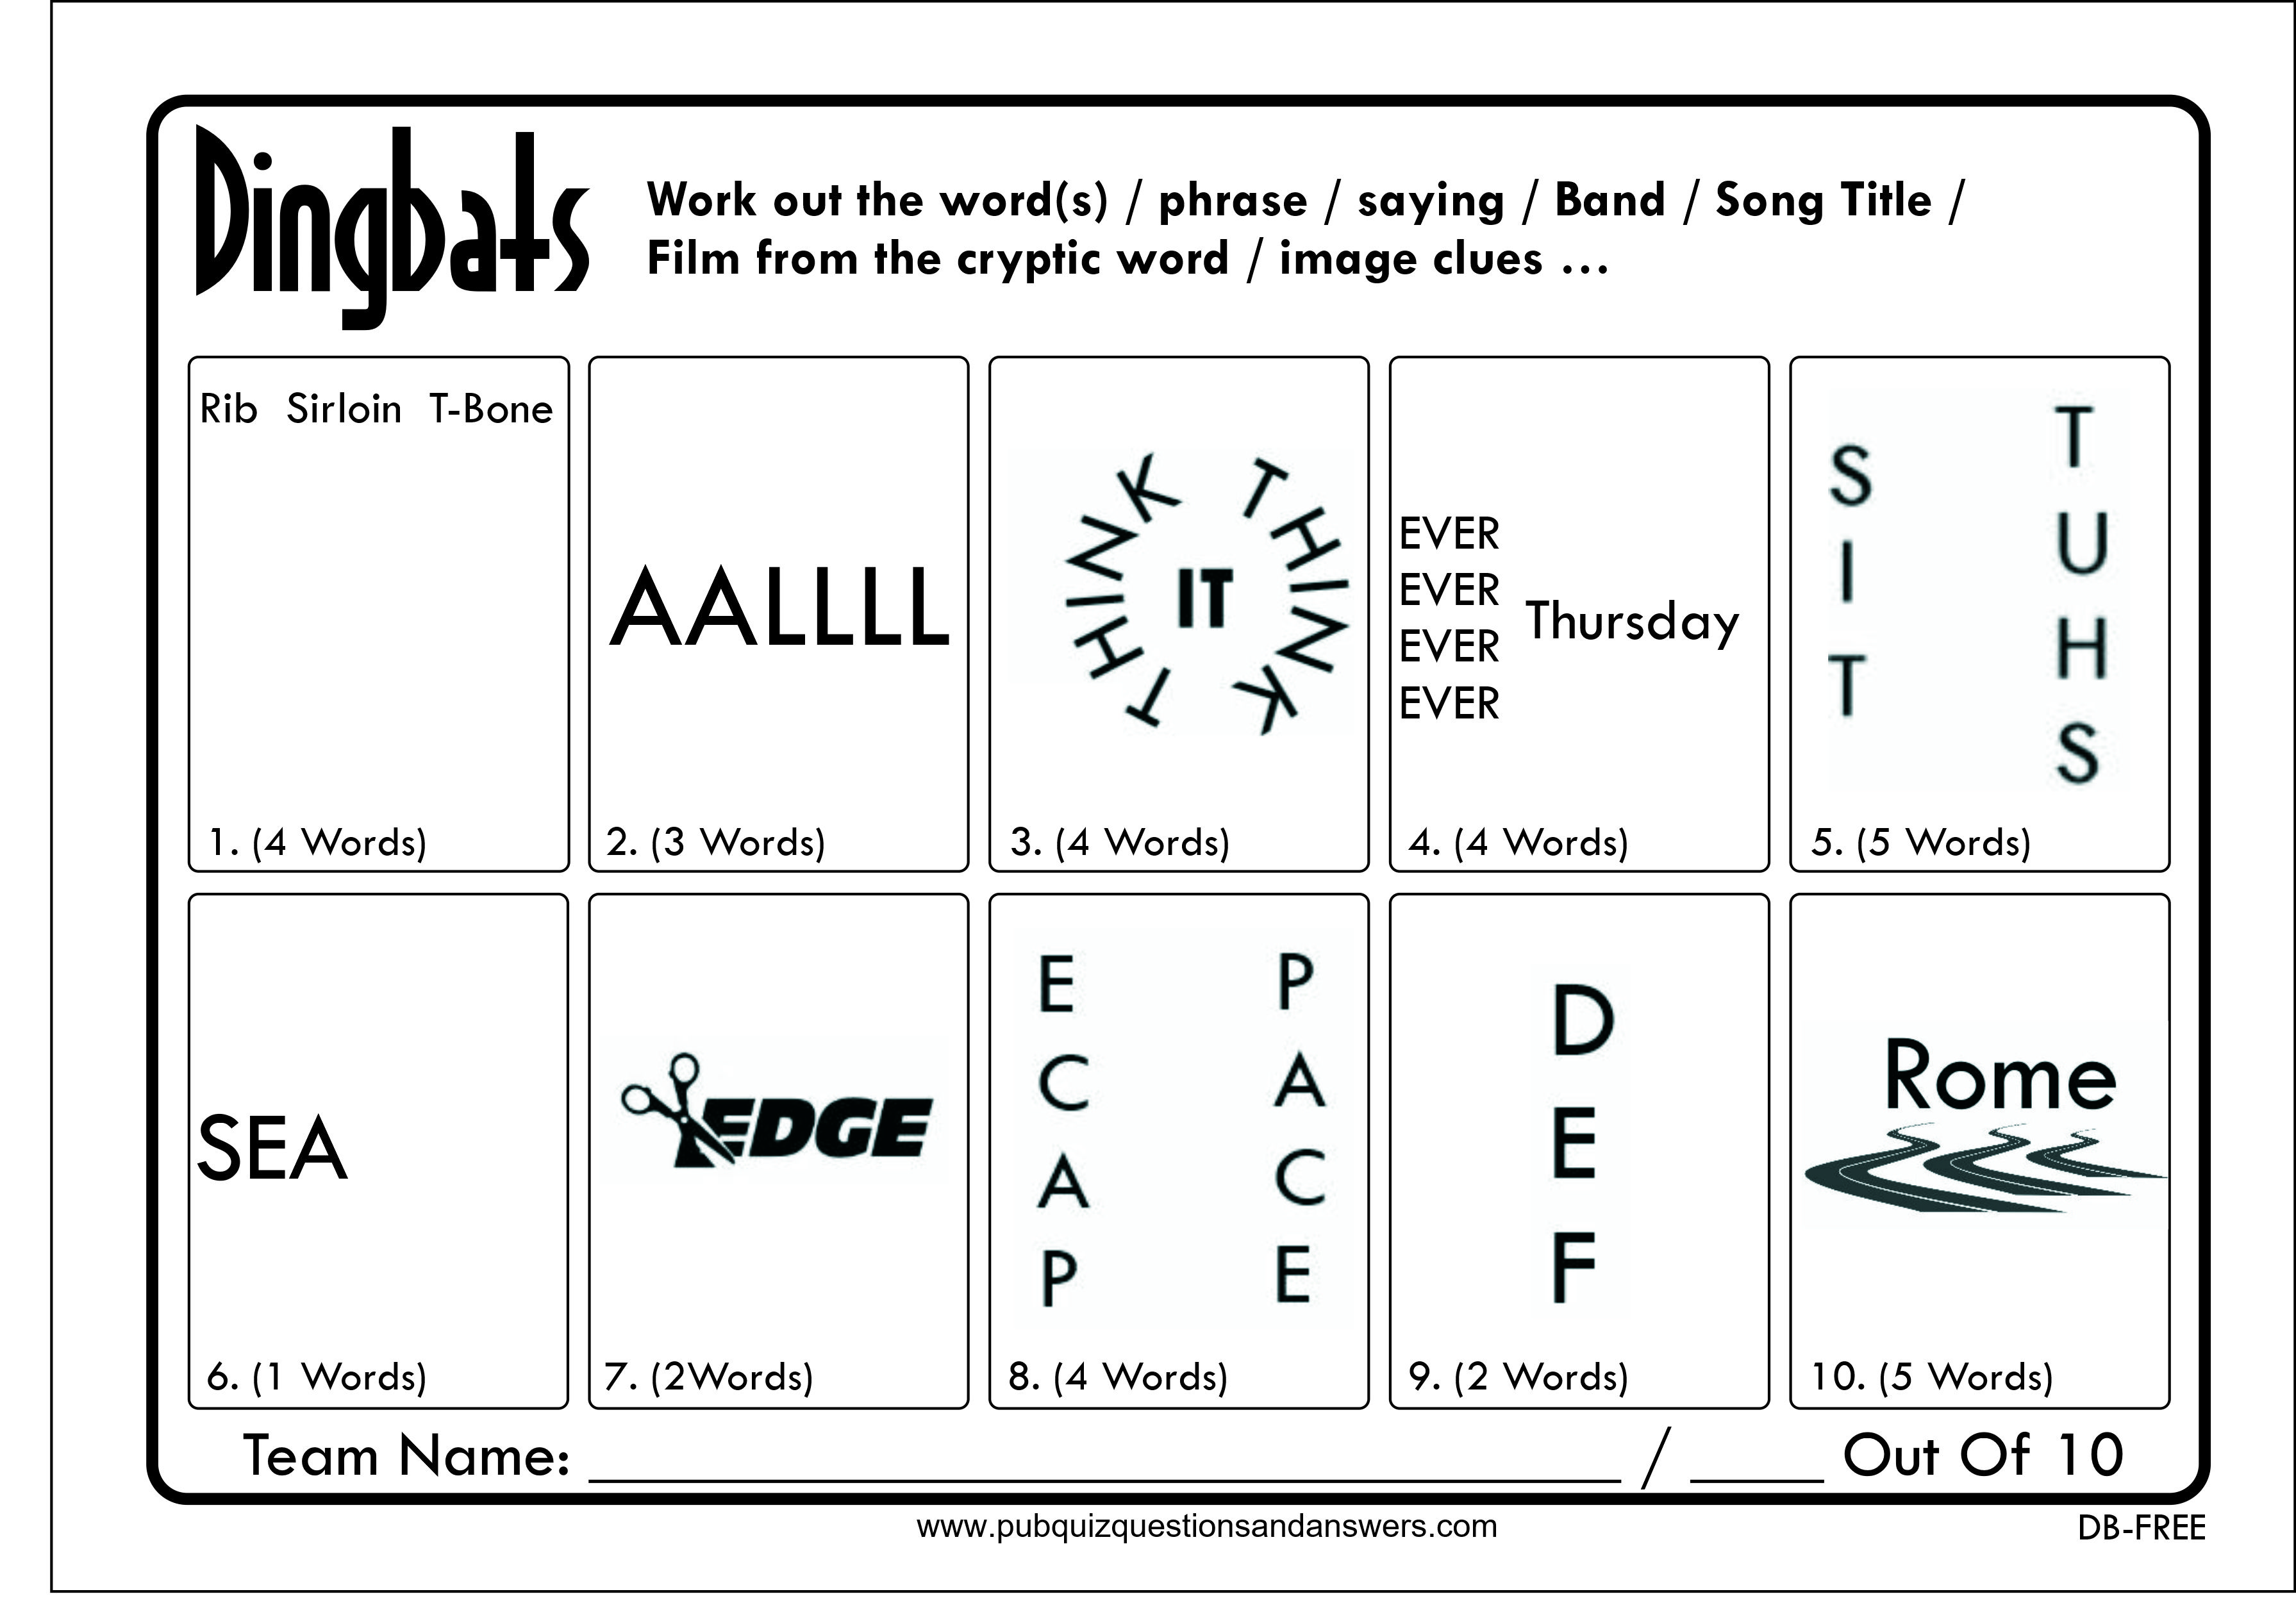 Free Dingbats Quiz | Quiz questions and answers, Pub quiz ...